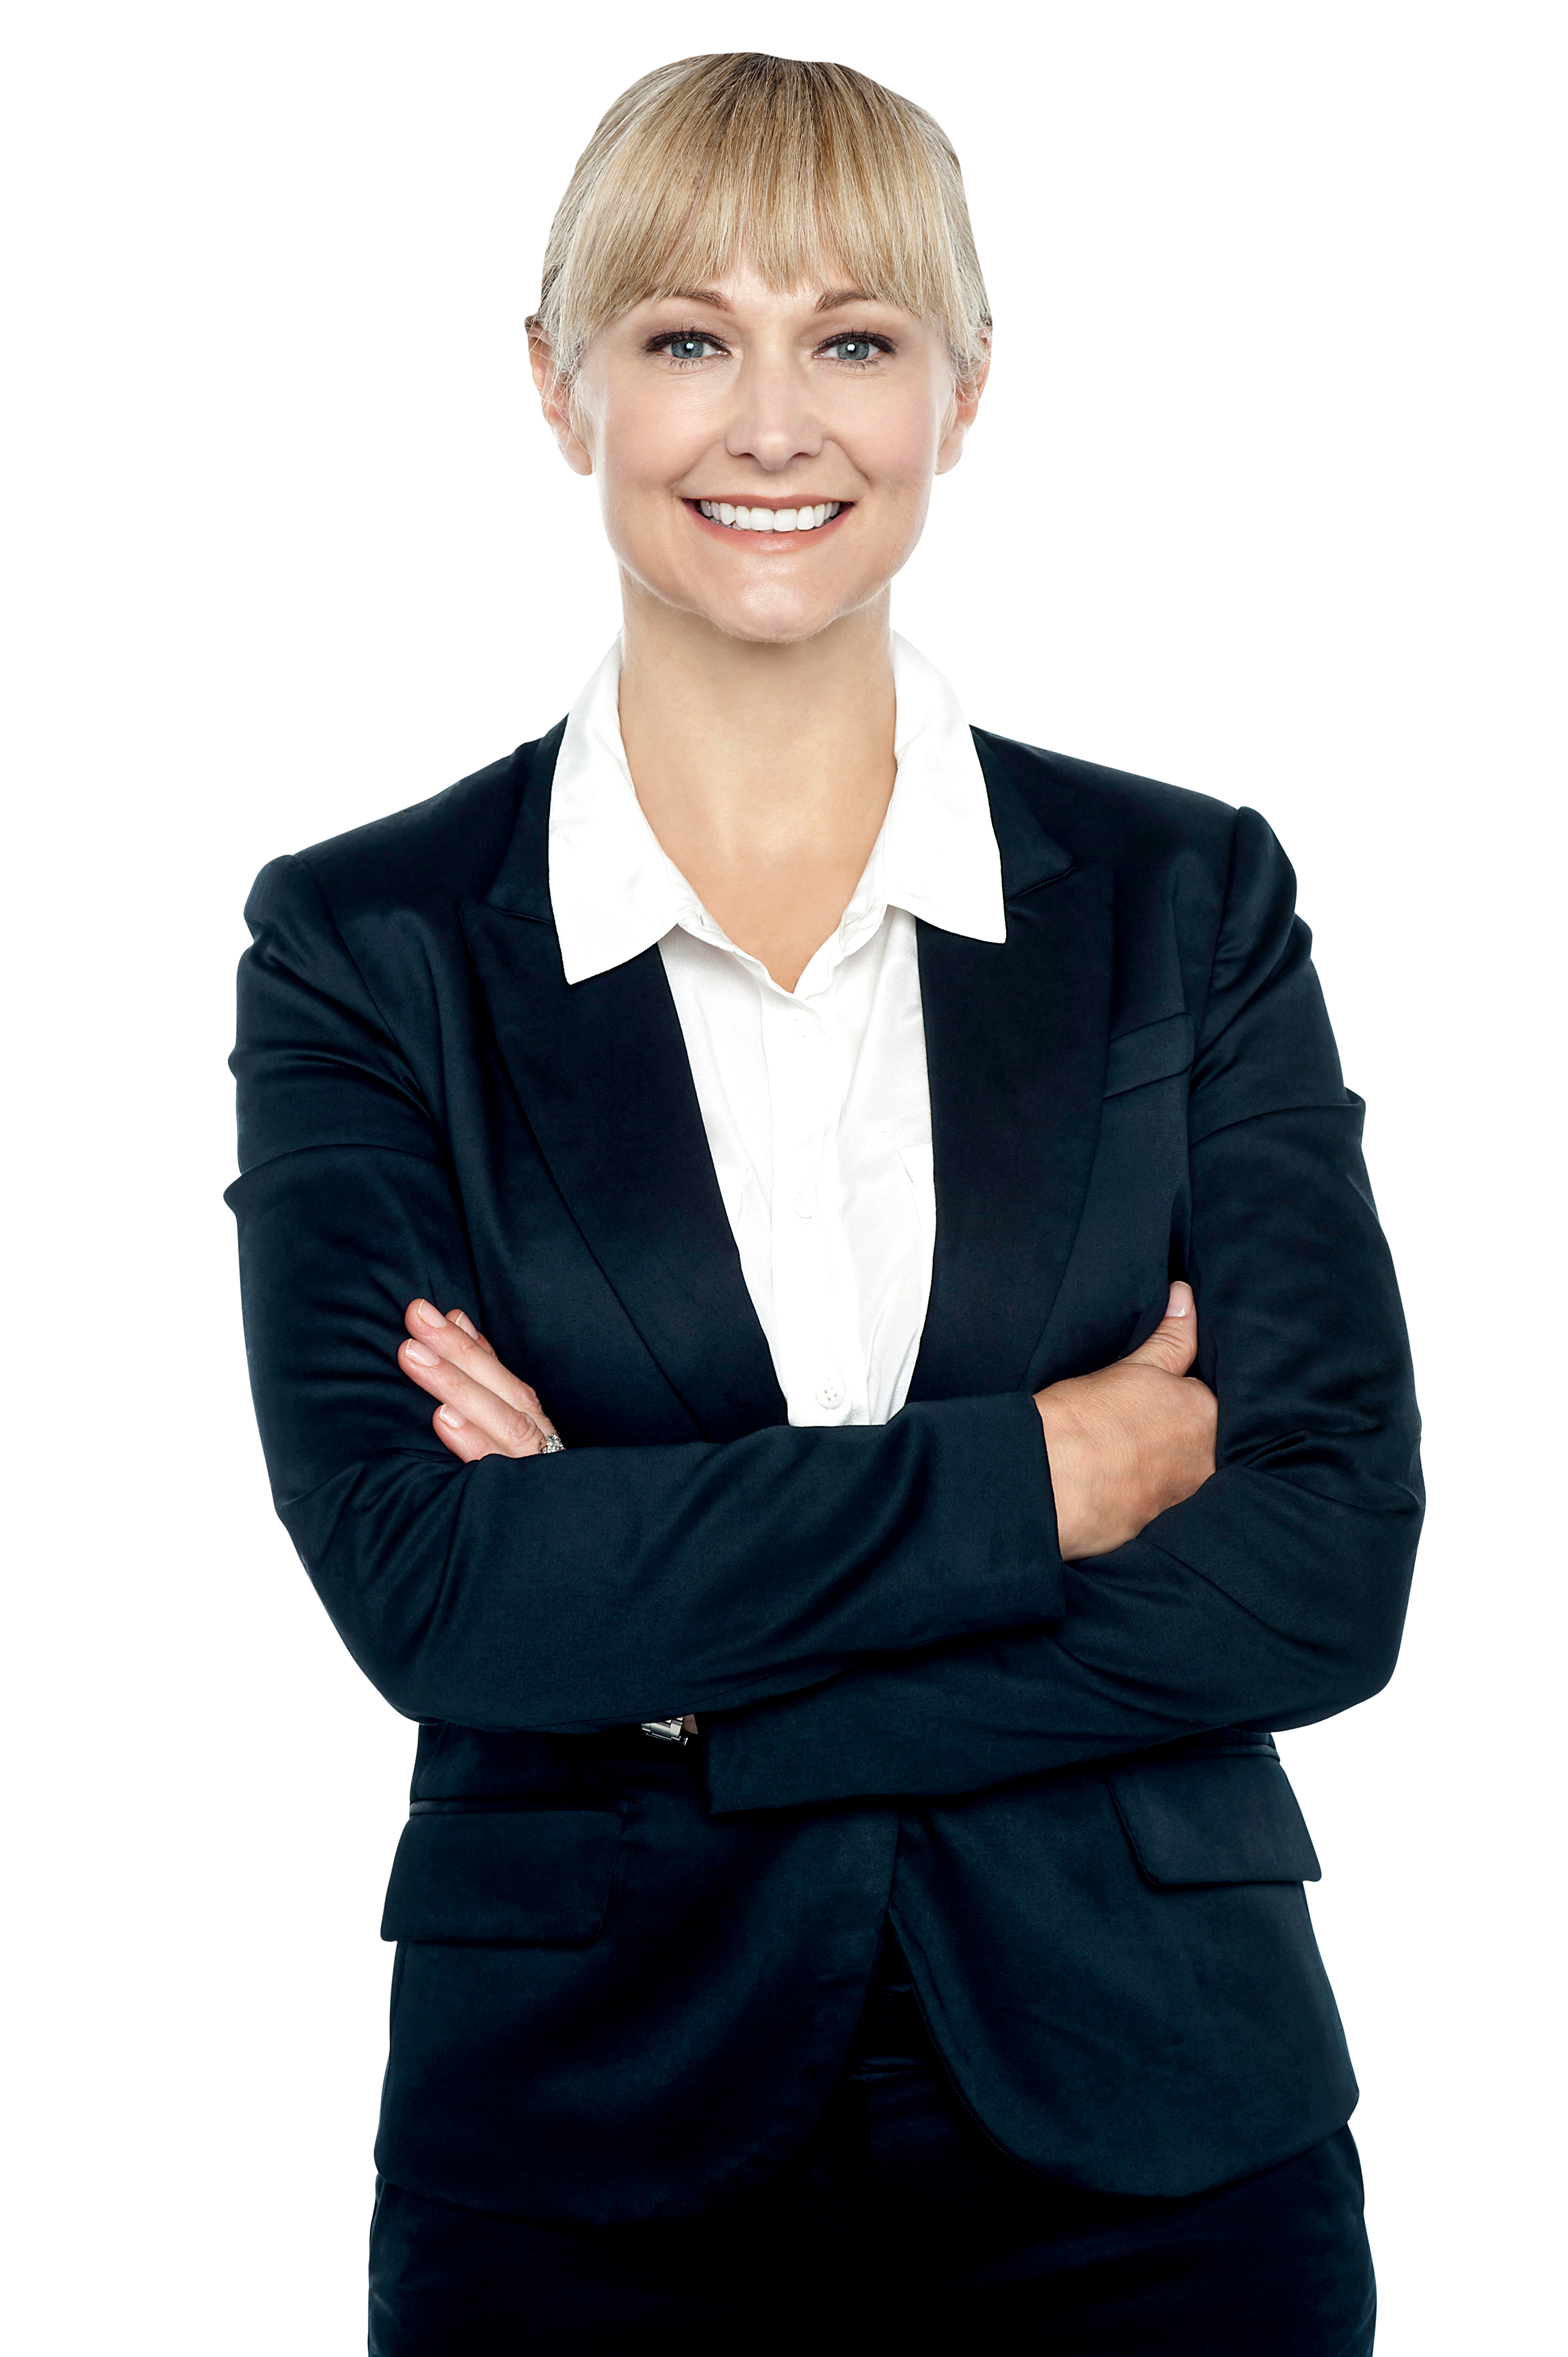 Women In Suit Png Image Purepng Free Transparent Cc0 Png Image